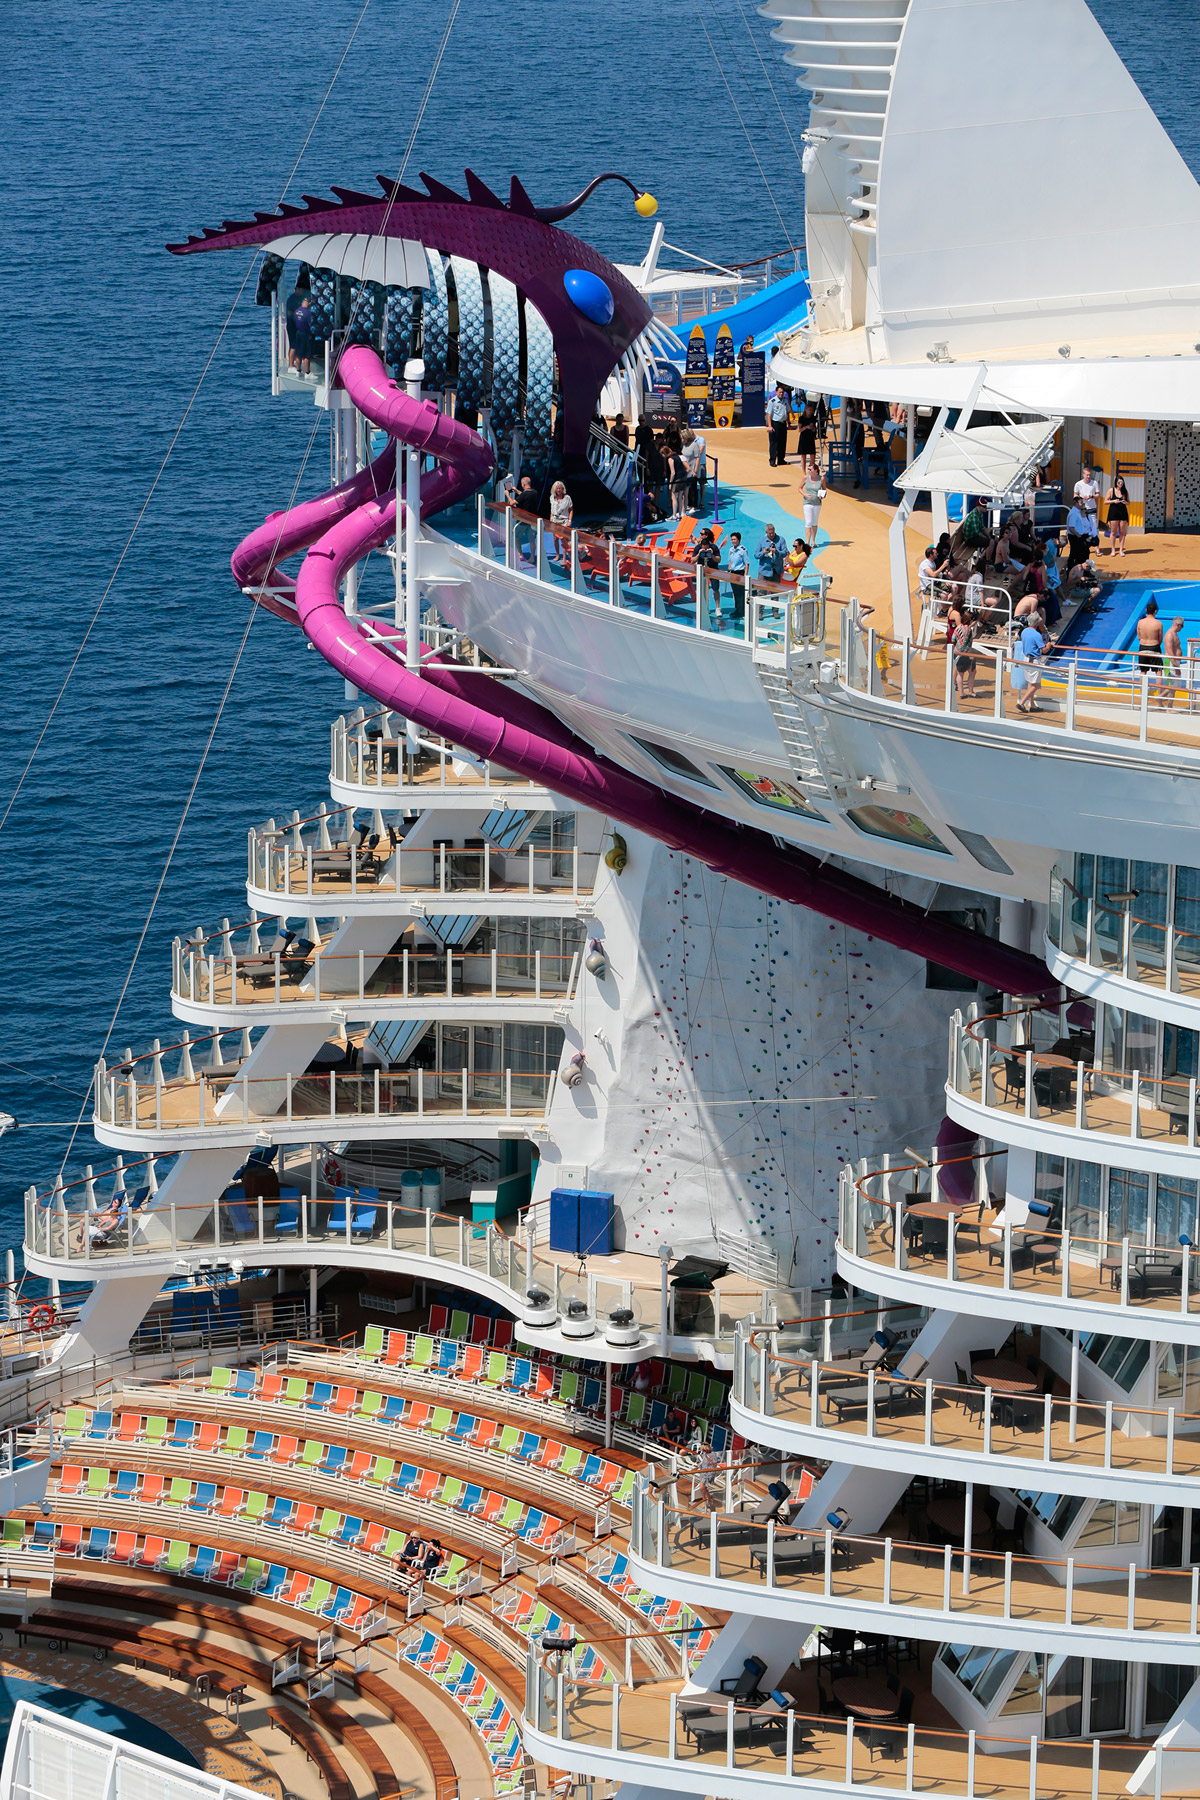 Ultimate Abyss – the tallest slide on the high seas